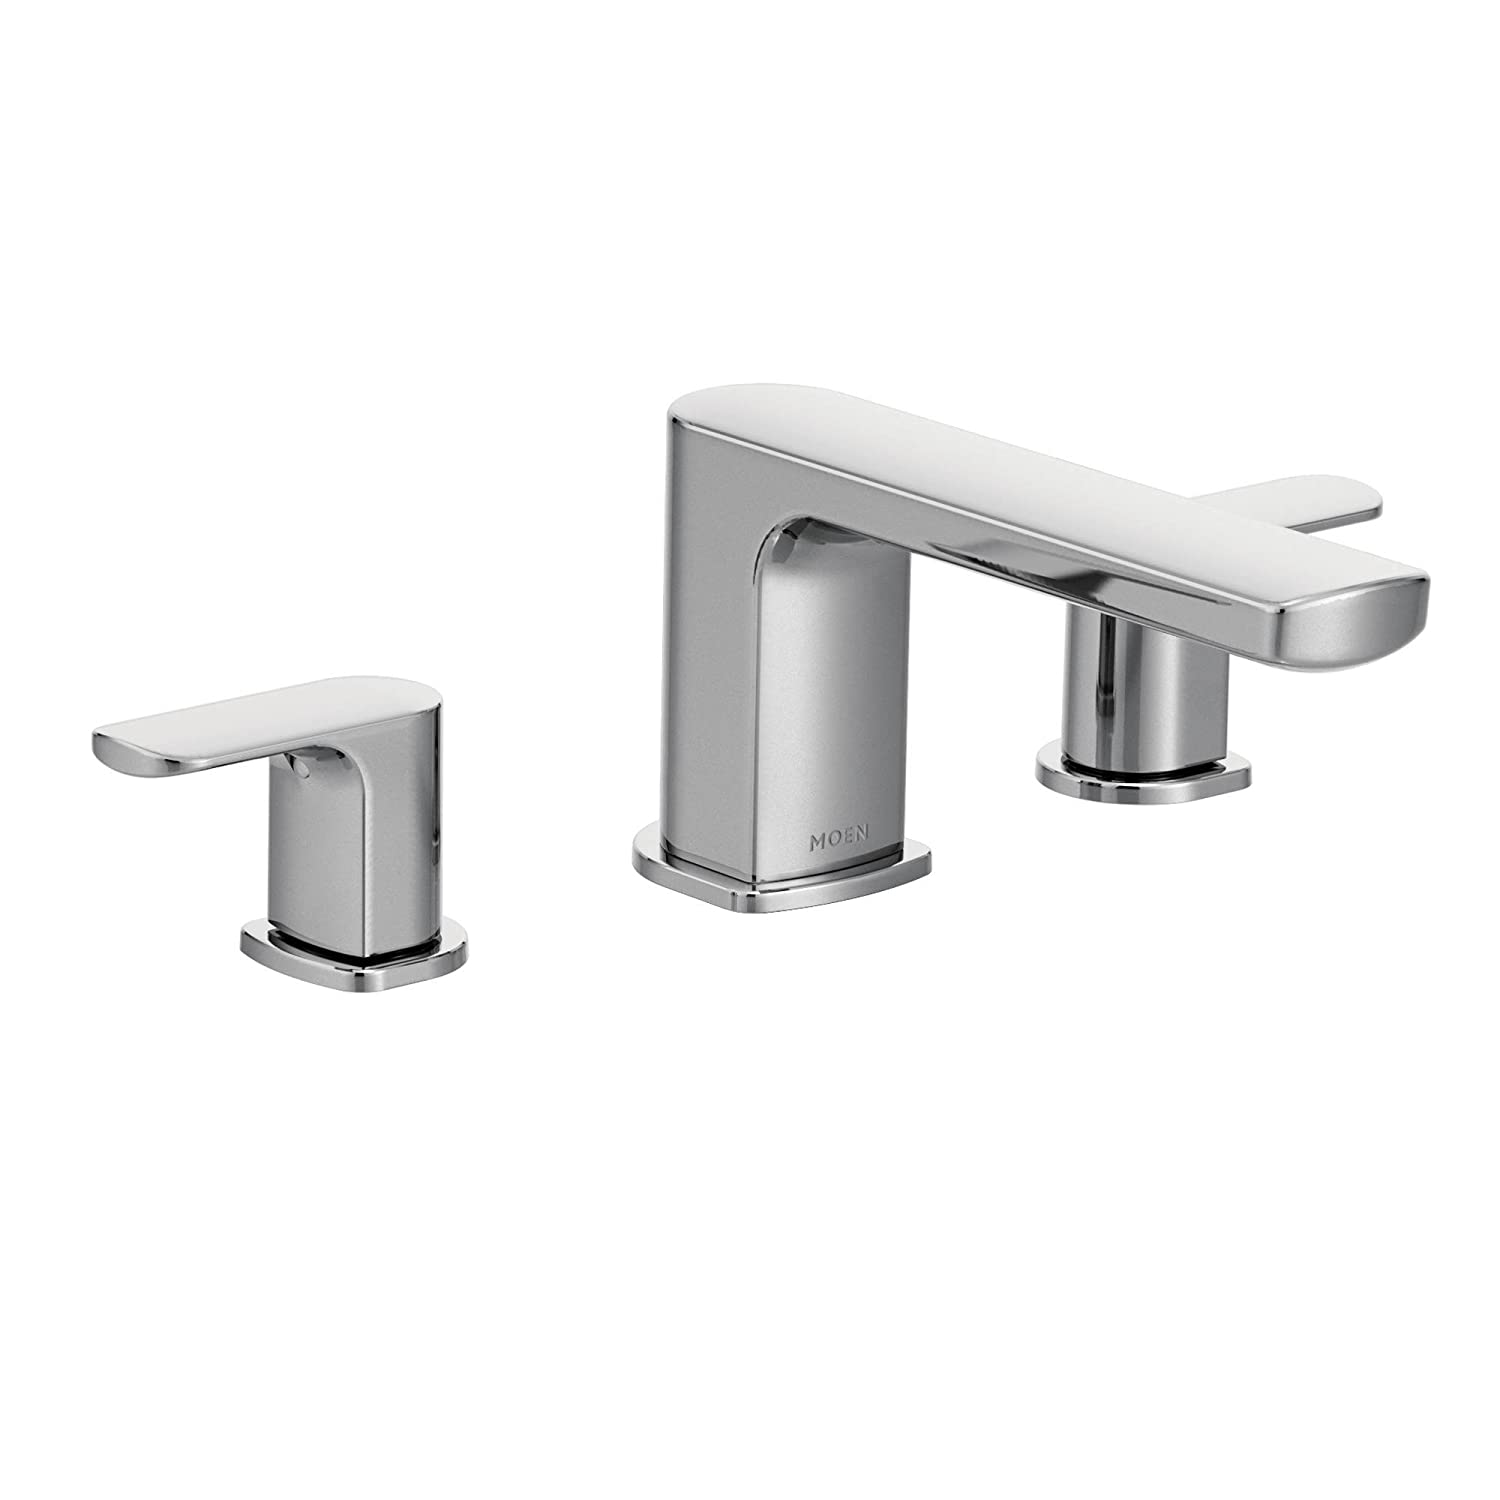 Moen T935 Rizon Two-Handle Low Arc Roman Tub Faucet Trim without ...